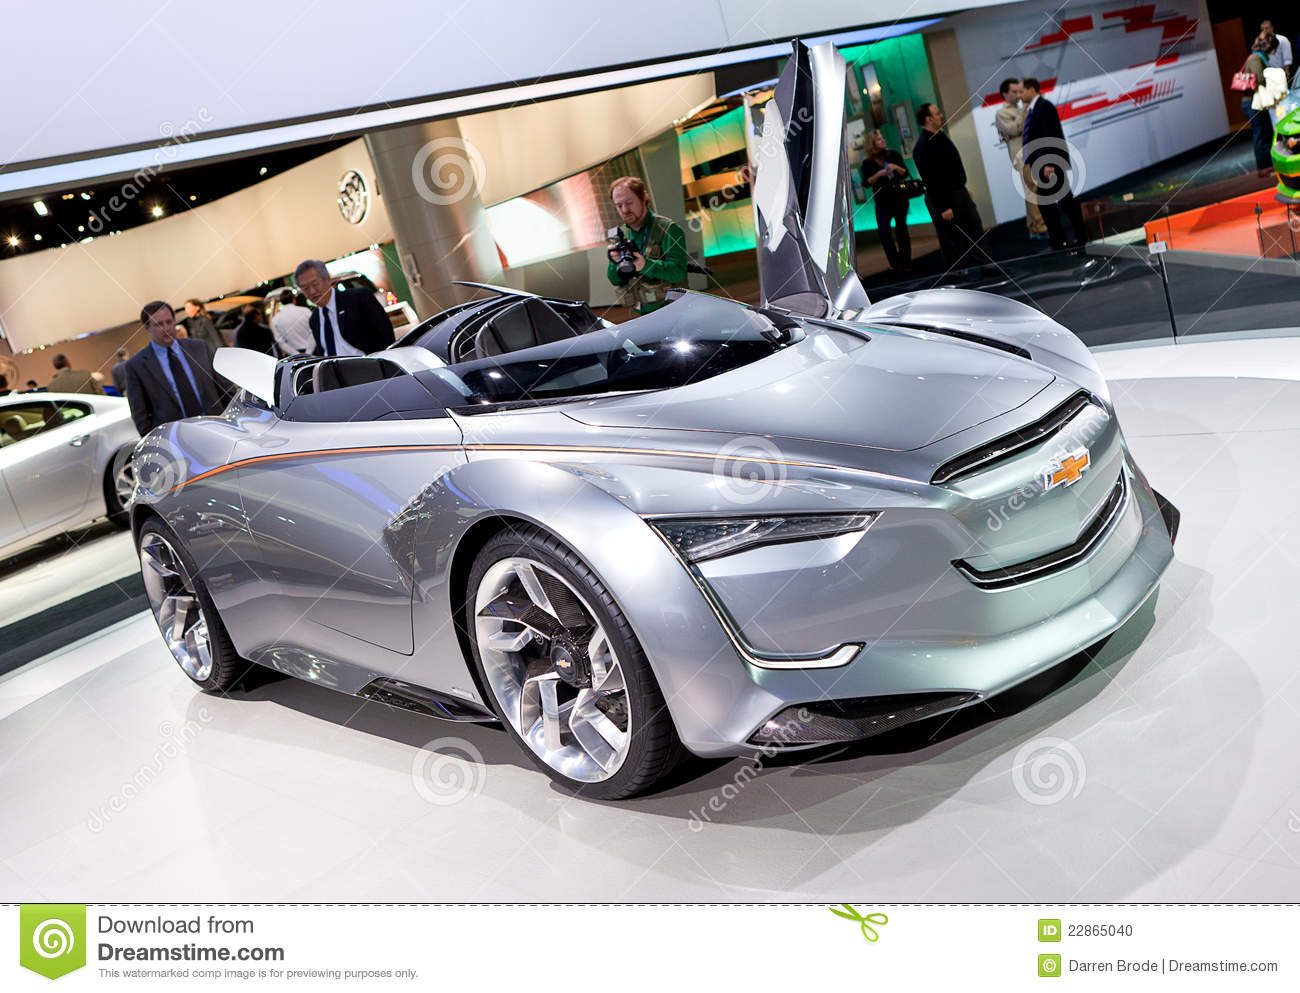 All Chevy chevy cars 2012 Chevy Miray Concept Car 2012 NAIAS Stock Photo - Image of style ...